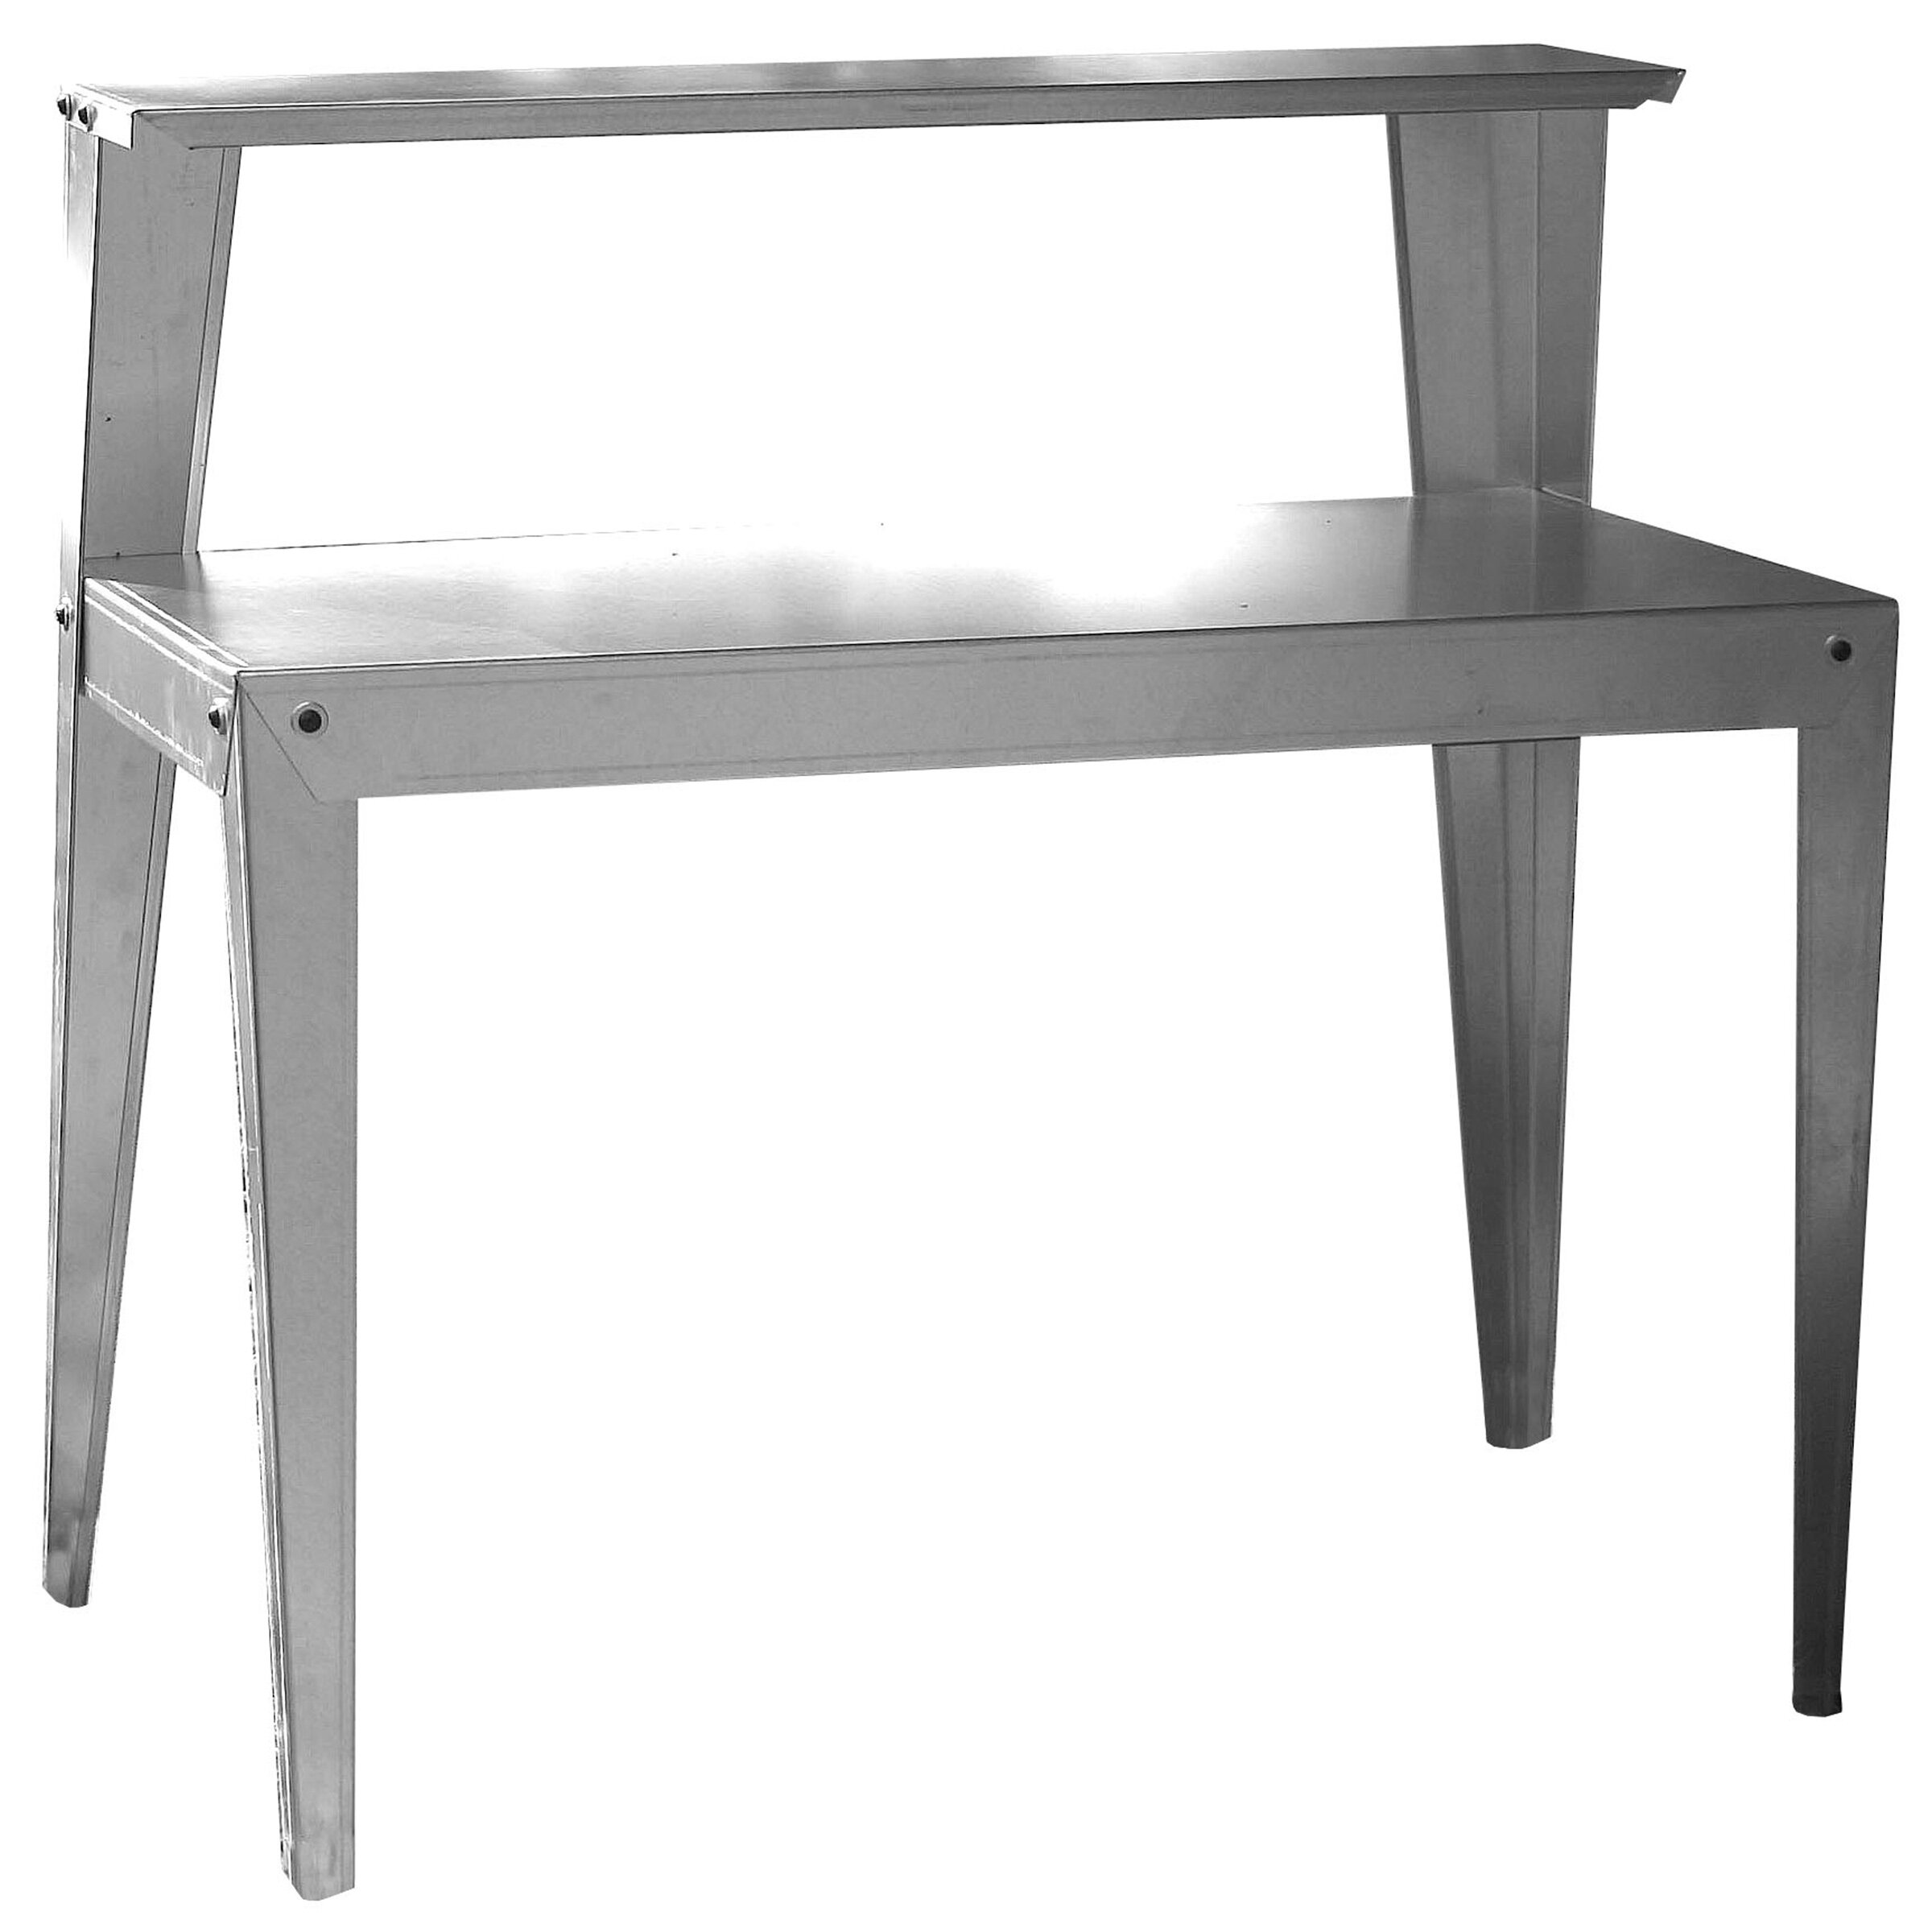 4 foot adjustable height folding table - Sportsman Series Multi Use Galvanized Steel Top Workbench